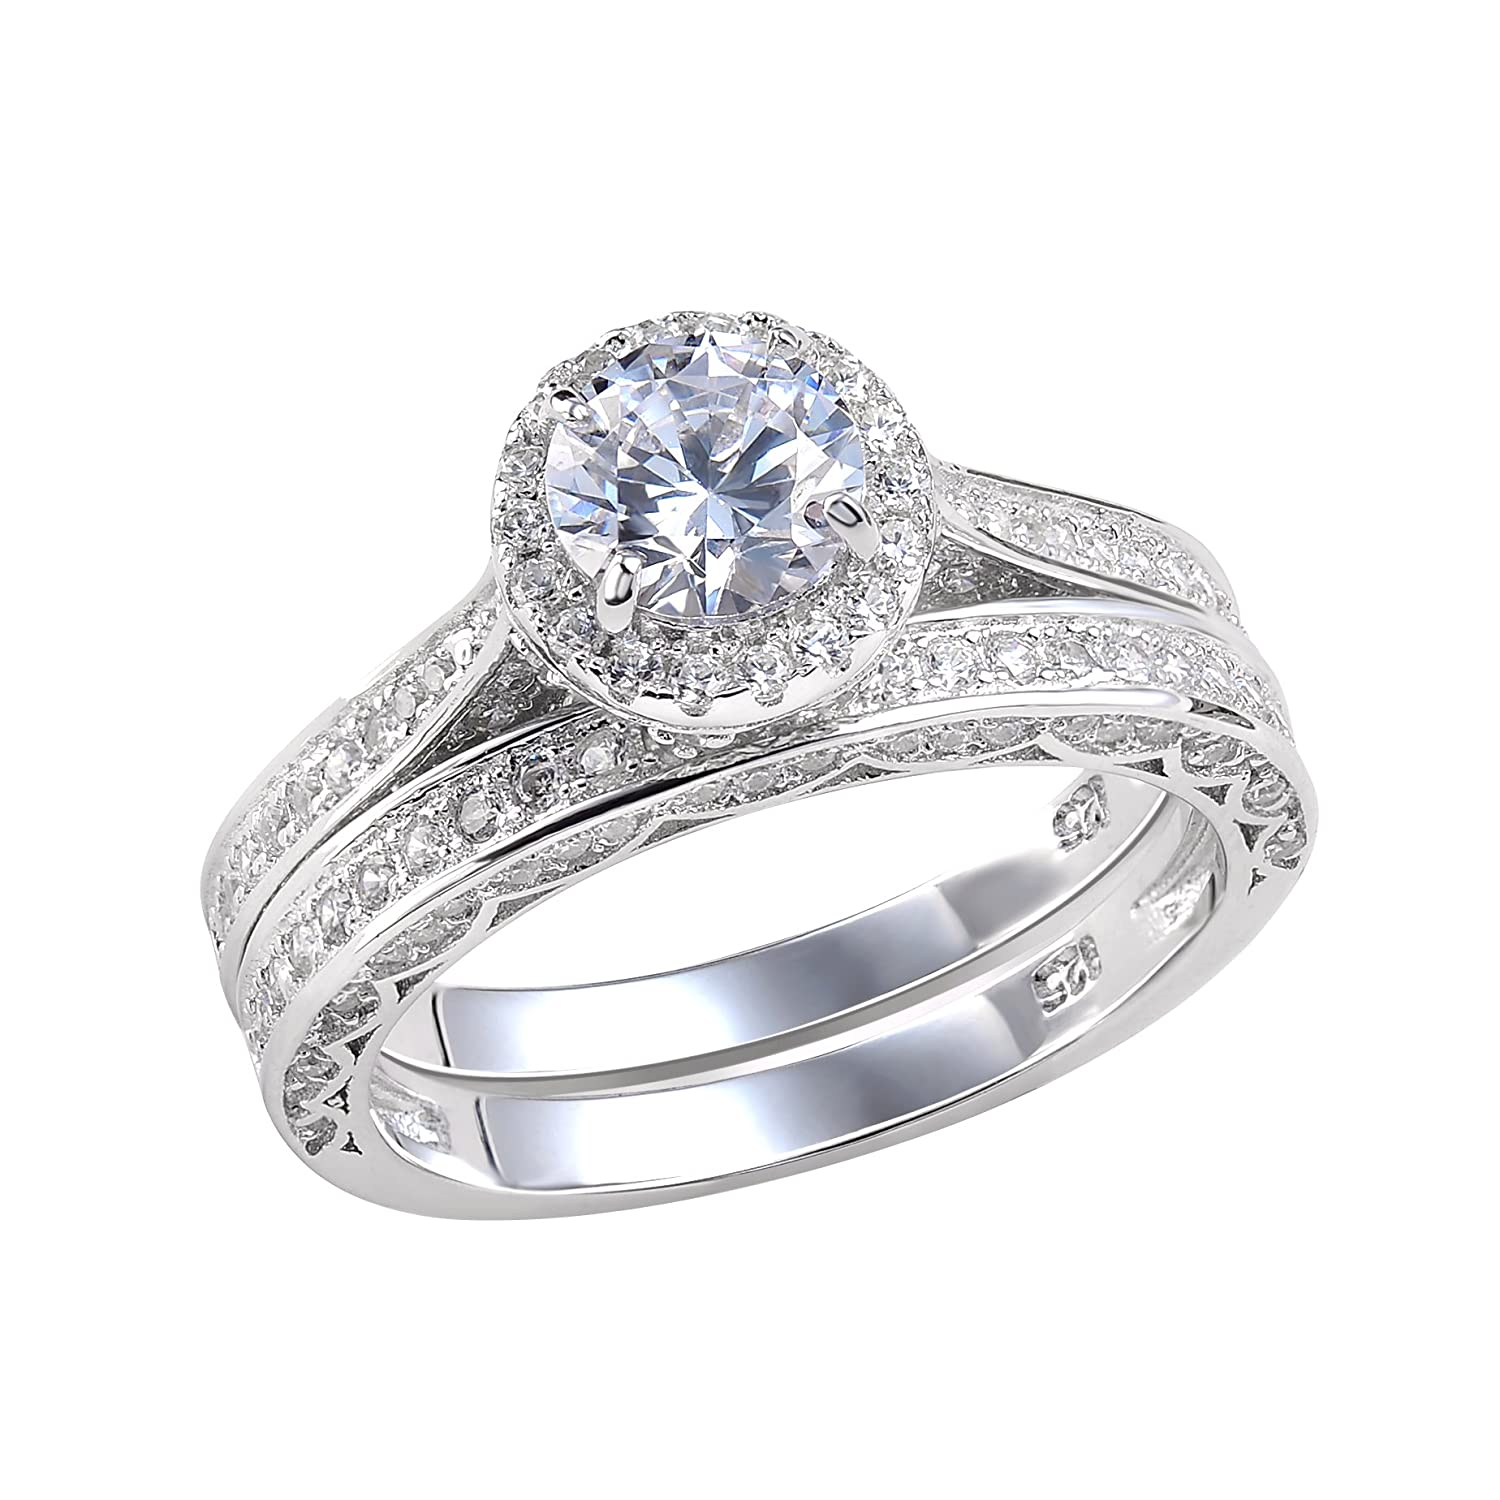 ring engagement collection elegant rings of dollar wedding